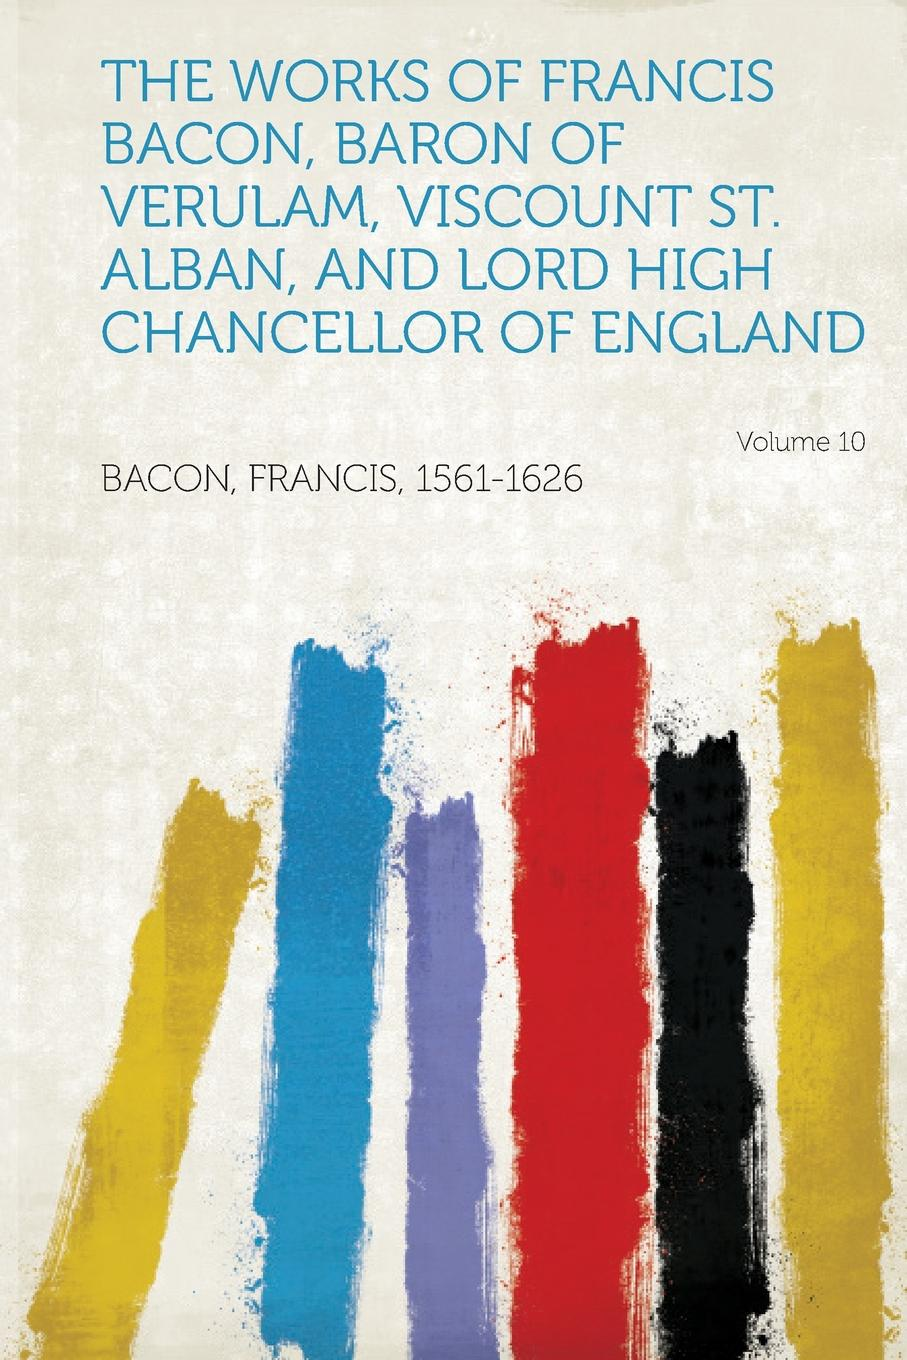 Francis Bacon The Works of Francis Bacon, Baron of Verulam, Viscount St. Alban, and Lord High Chancellor of England Volume 10 фрэнсис бэкон the works of francis bacon volume 11